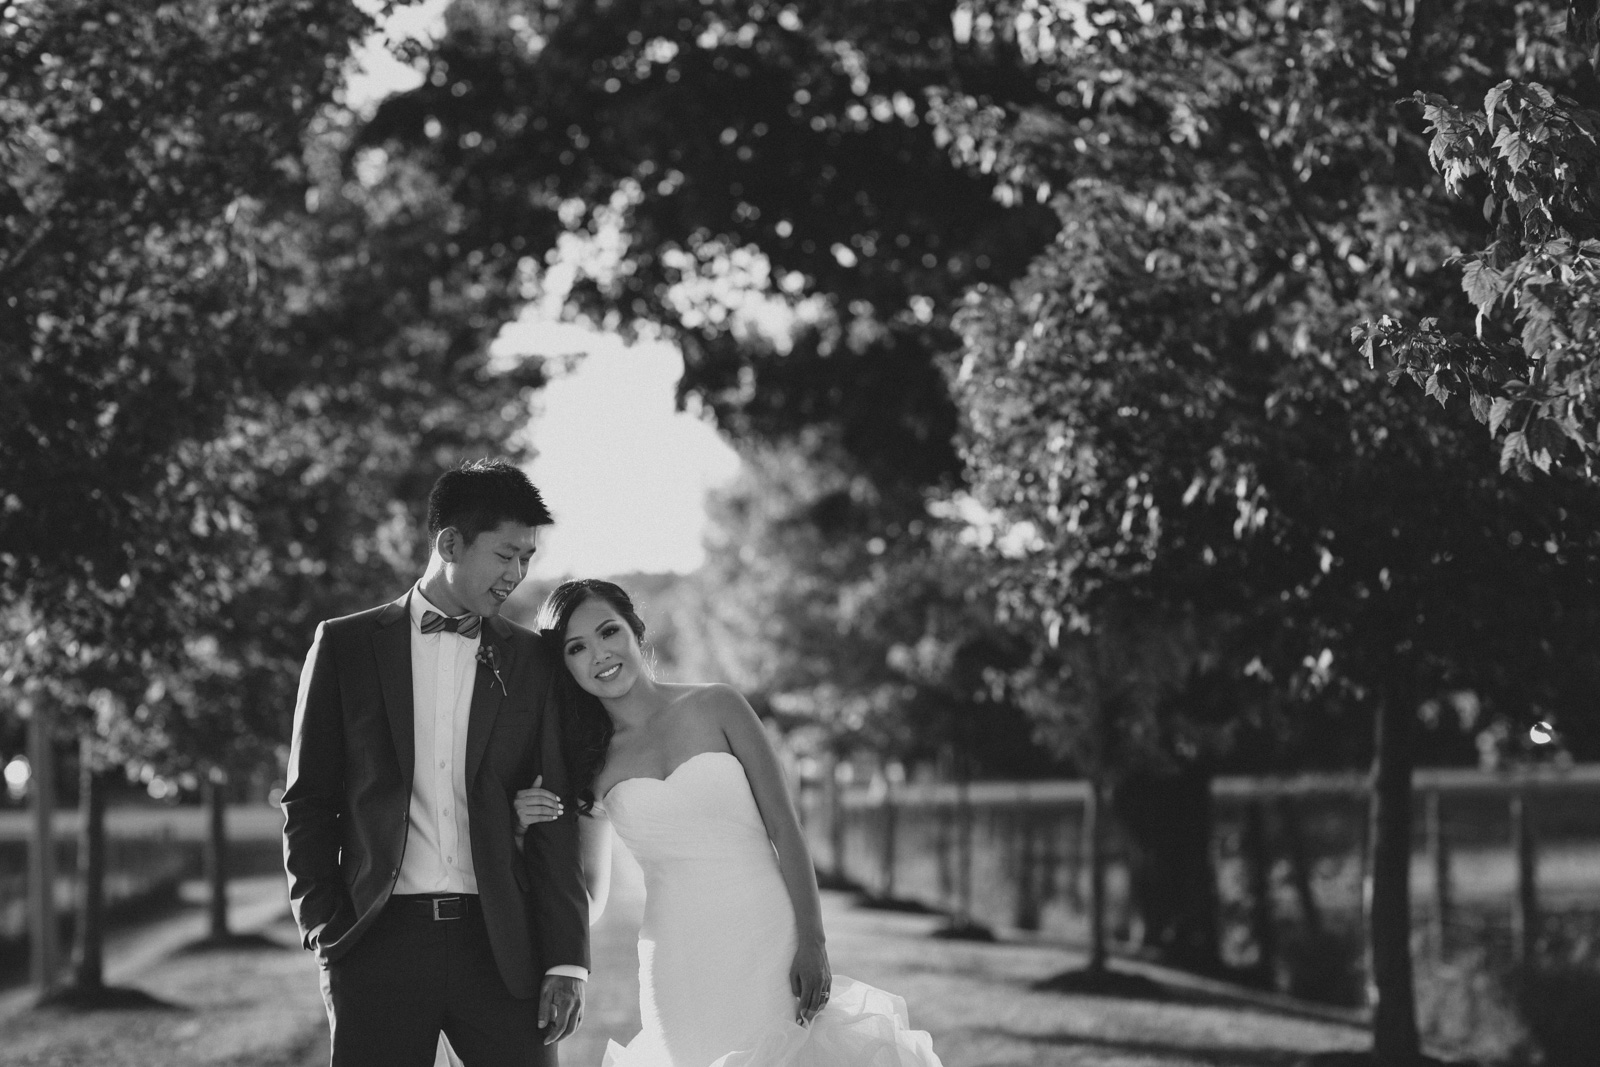 cambium-farms-wedding-photography-by-sam-wong-of-artanis-collective_54